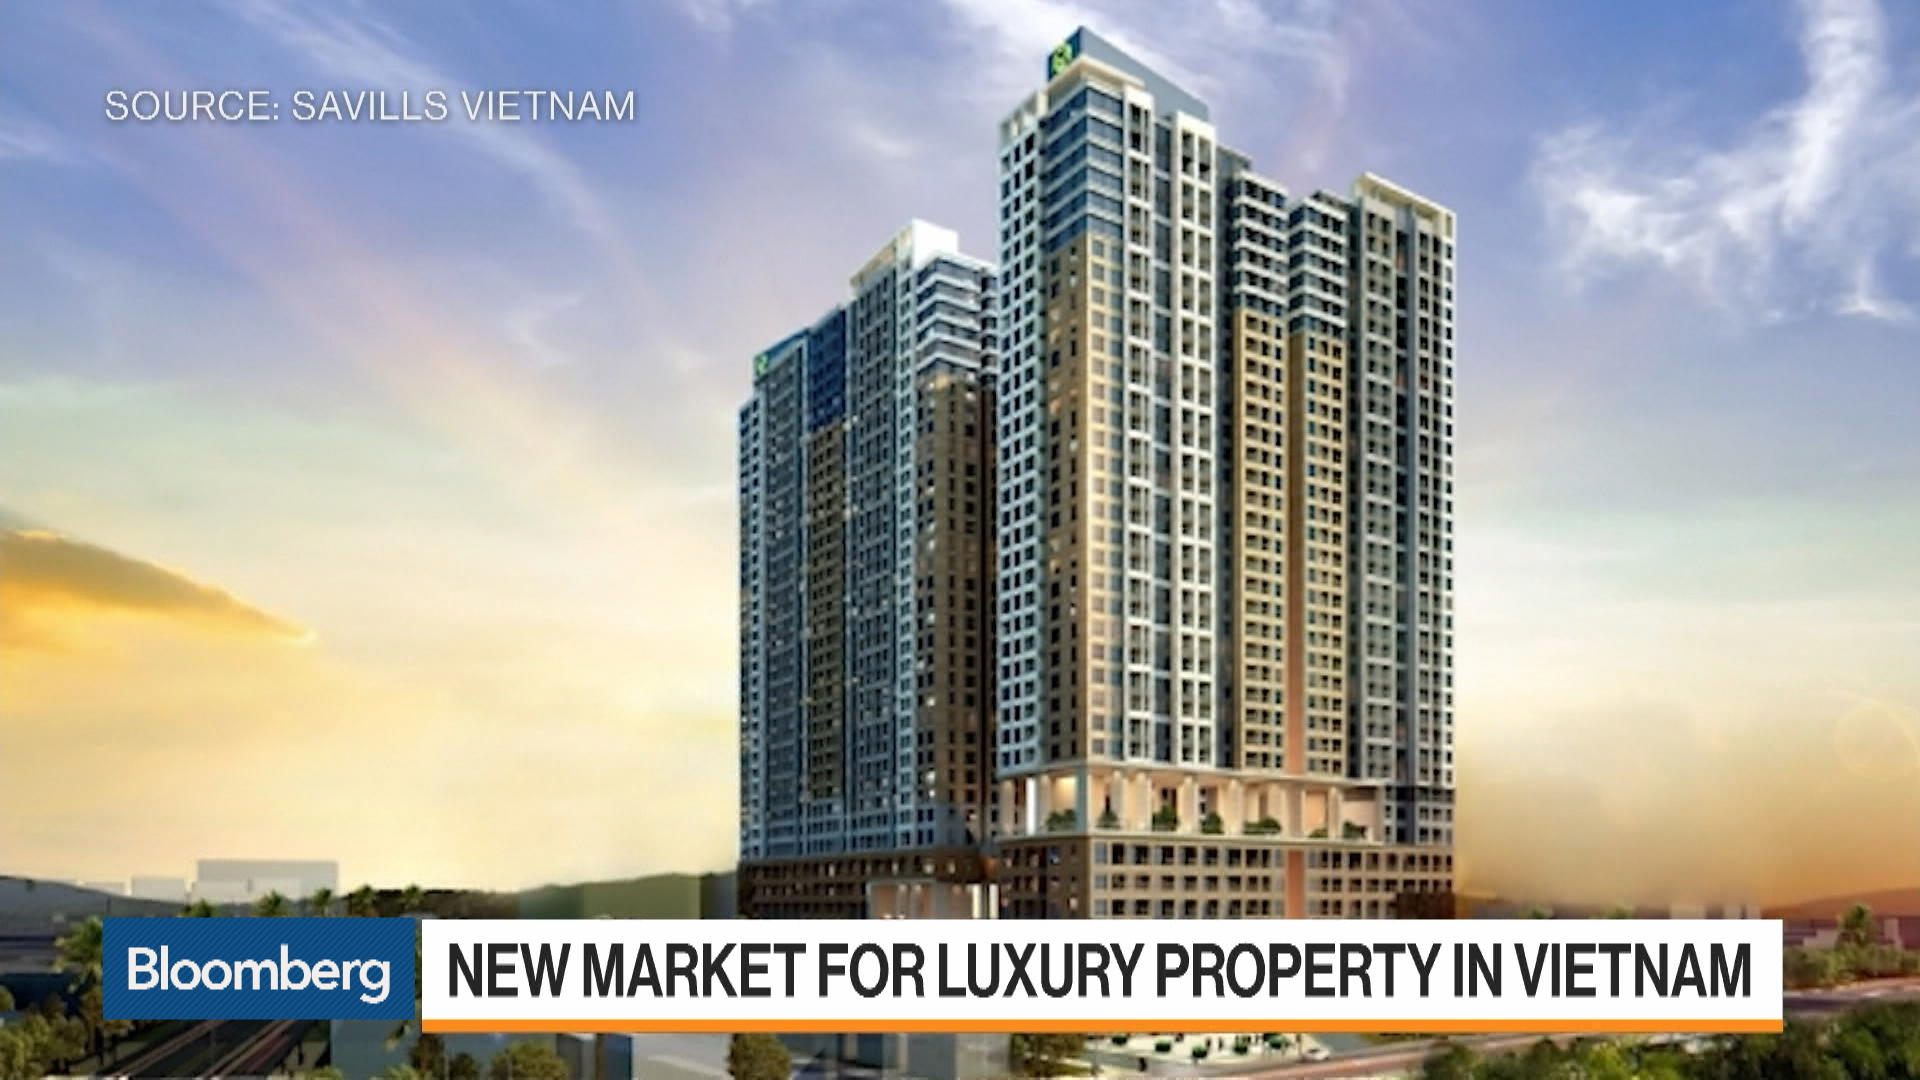 The Hot New Market for Luxury Property Is Vietnam - Bloomberg